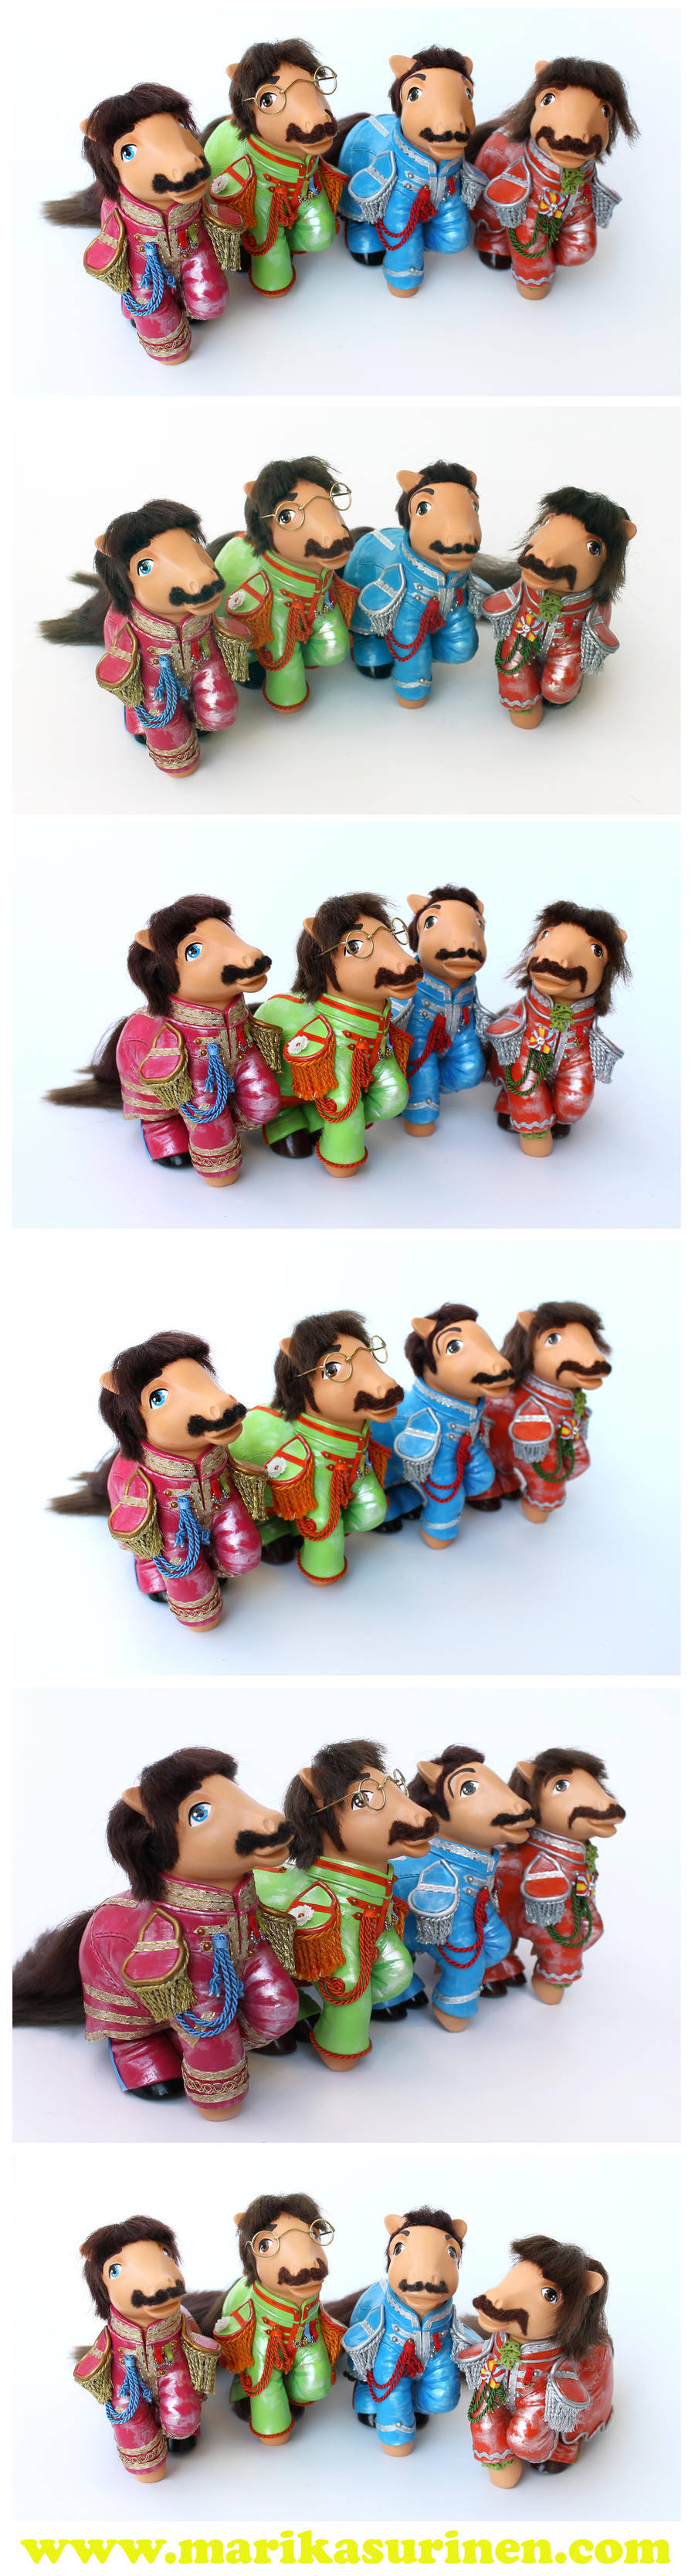 My Little The Beatles by Spippo